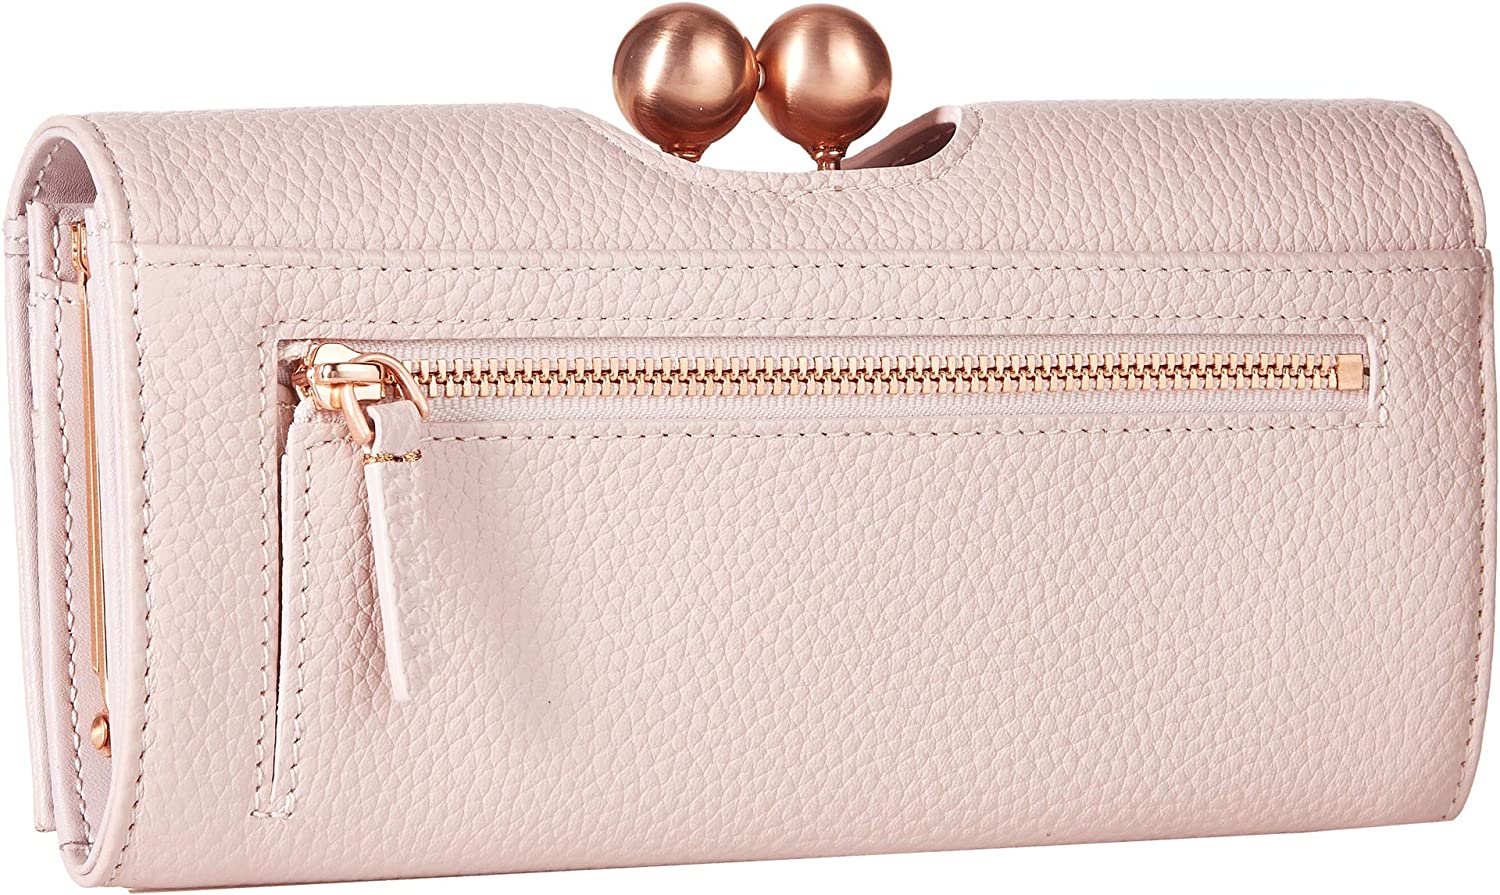 4f5d55708d23eb Ted Baker Josiey Wallet Antique Pink  Amazon.co.uk  Luggage